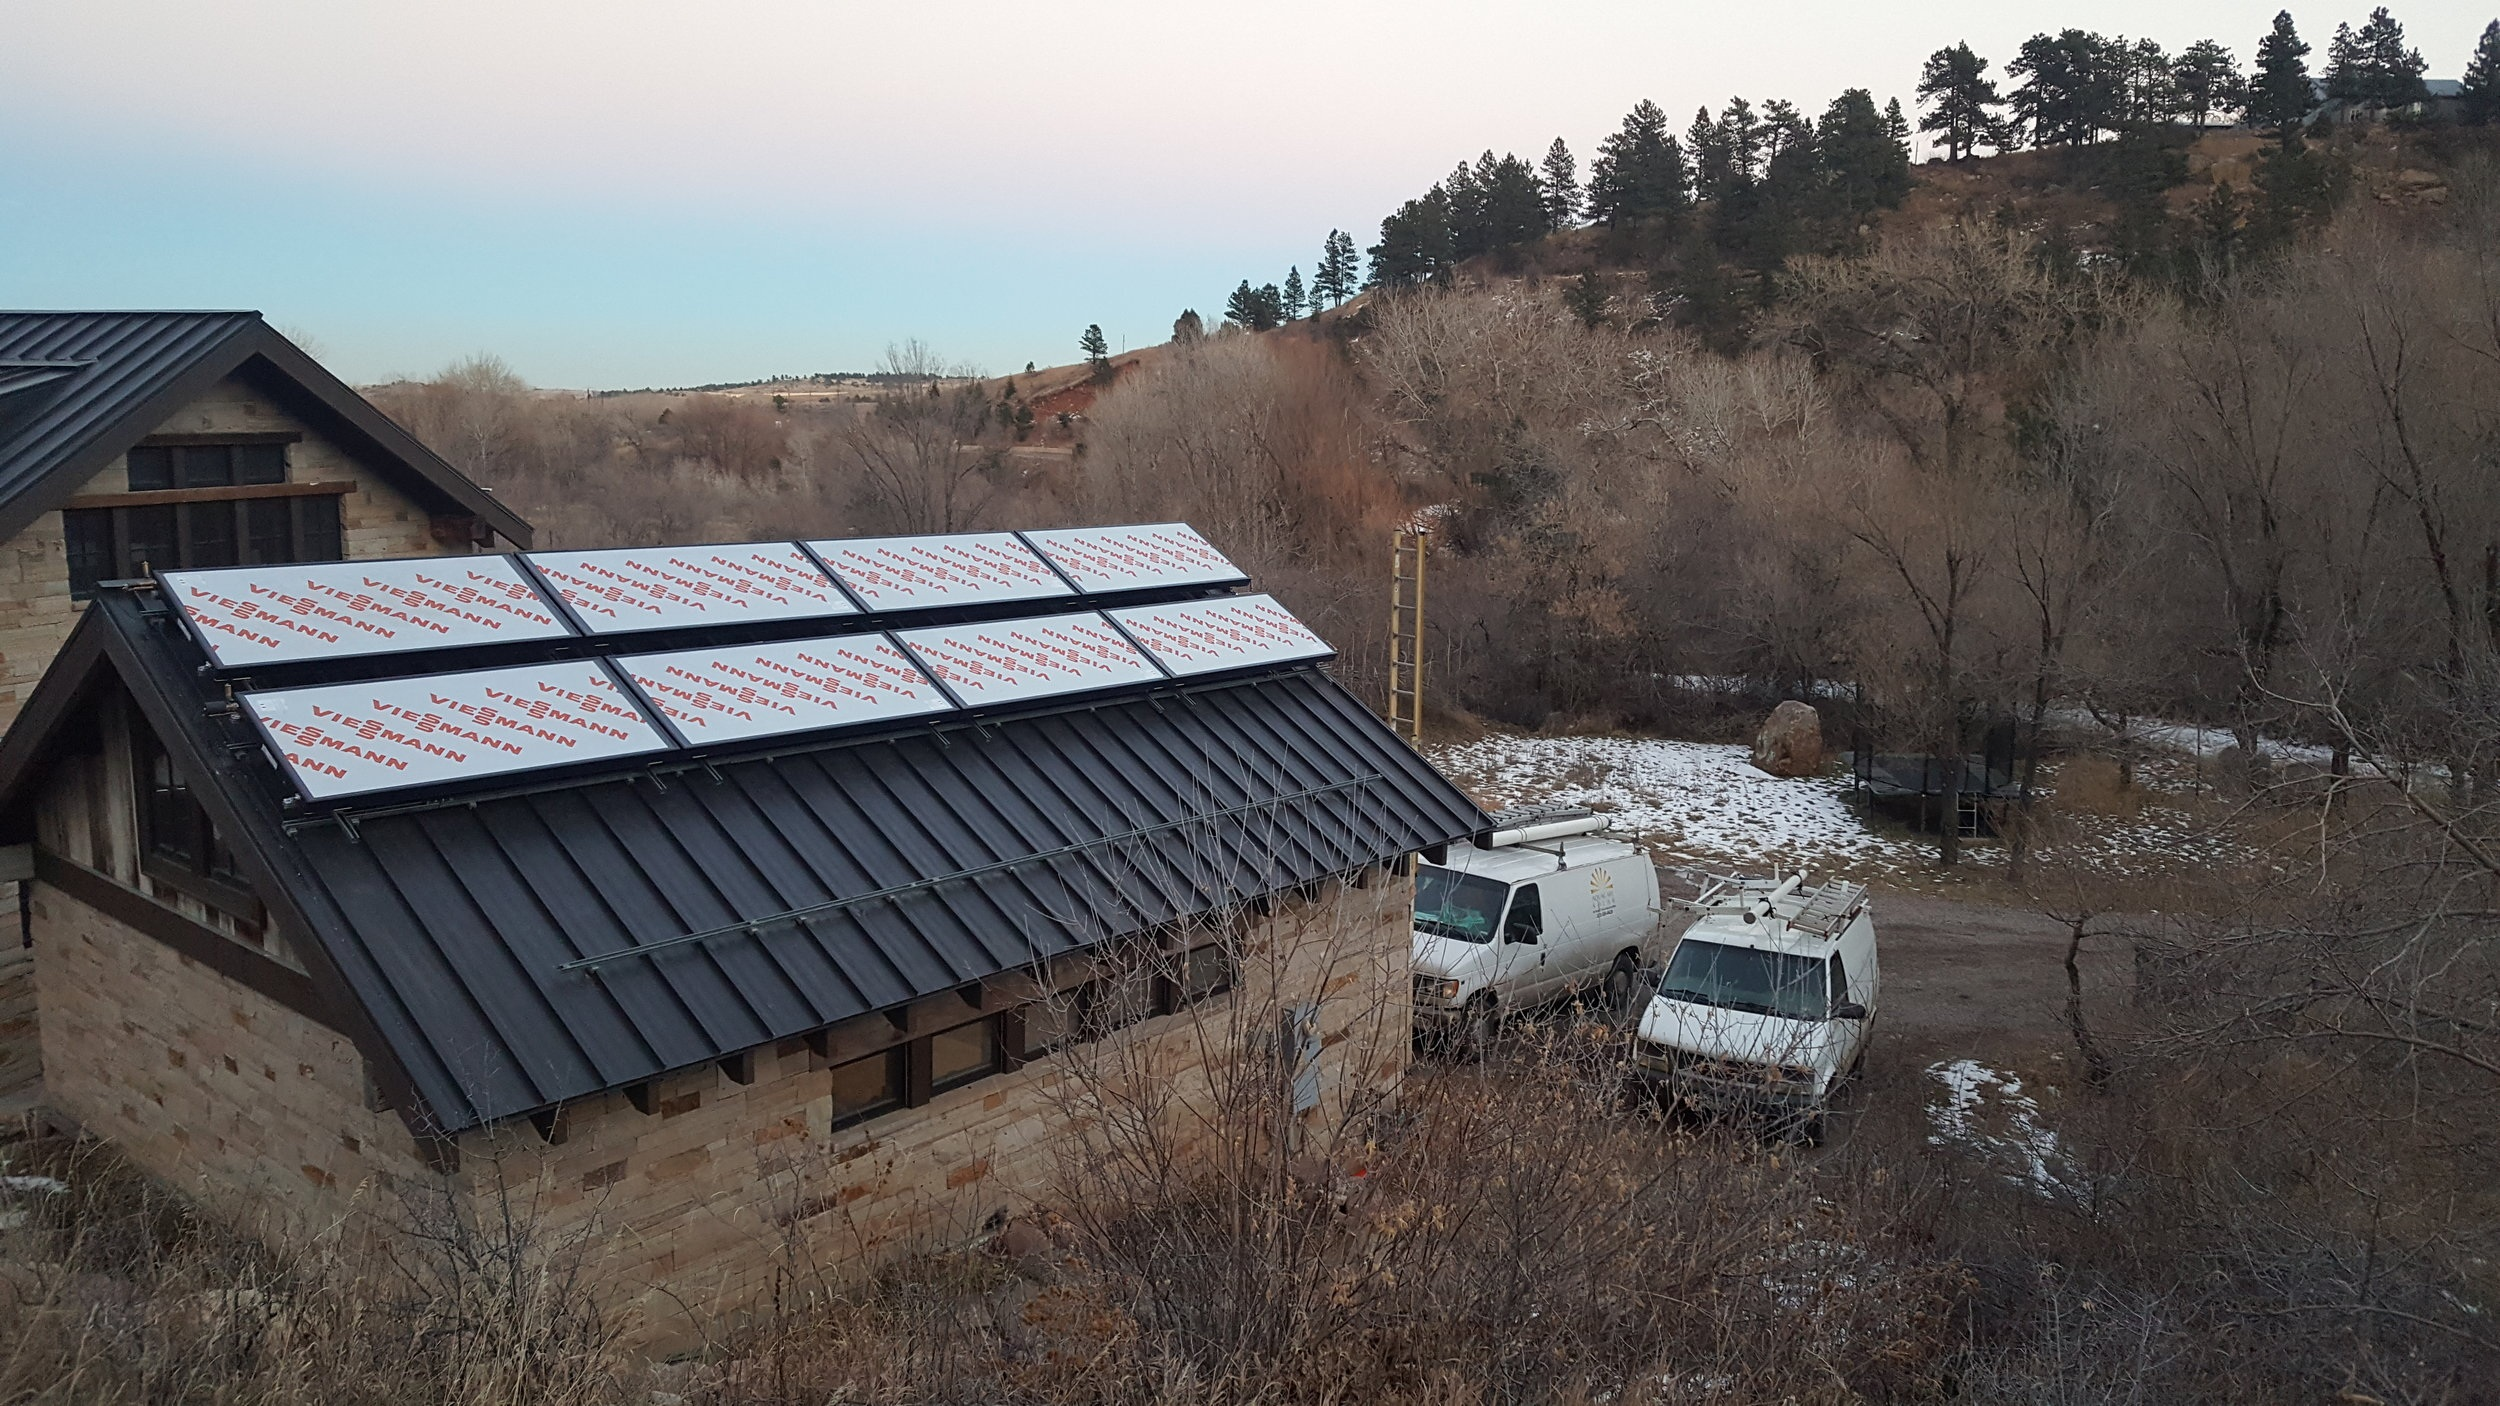 Viessmann solar thermal panels installed in Eldorado Springs, Colorado